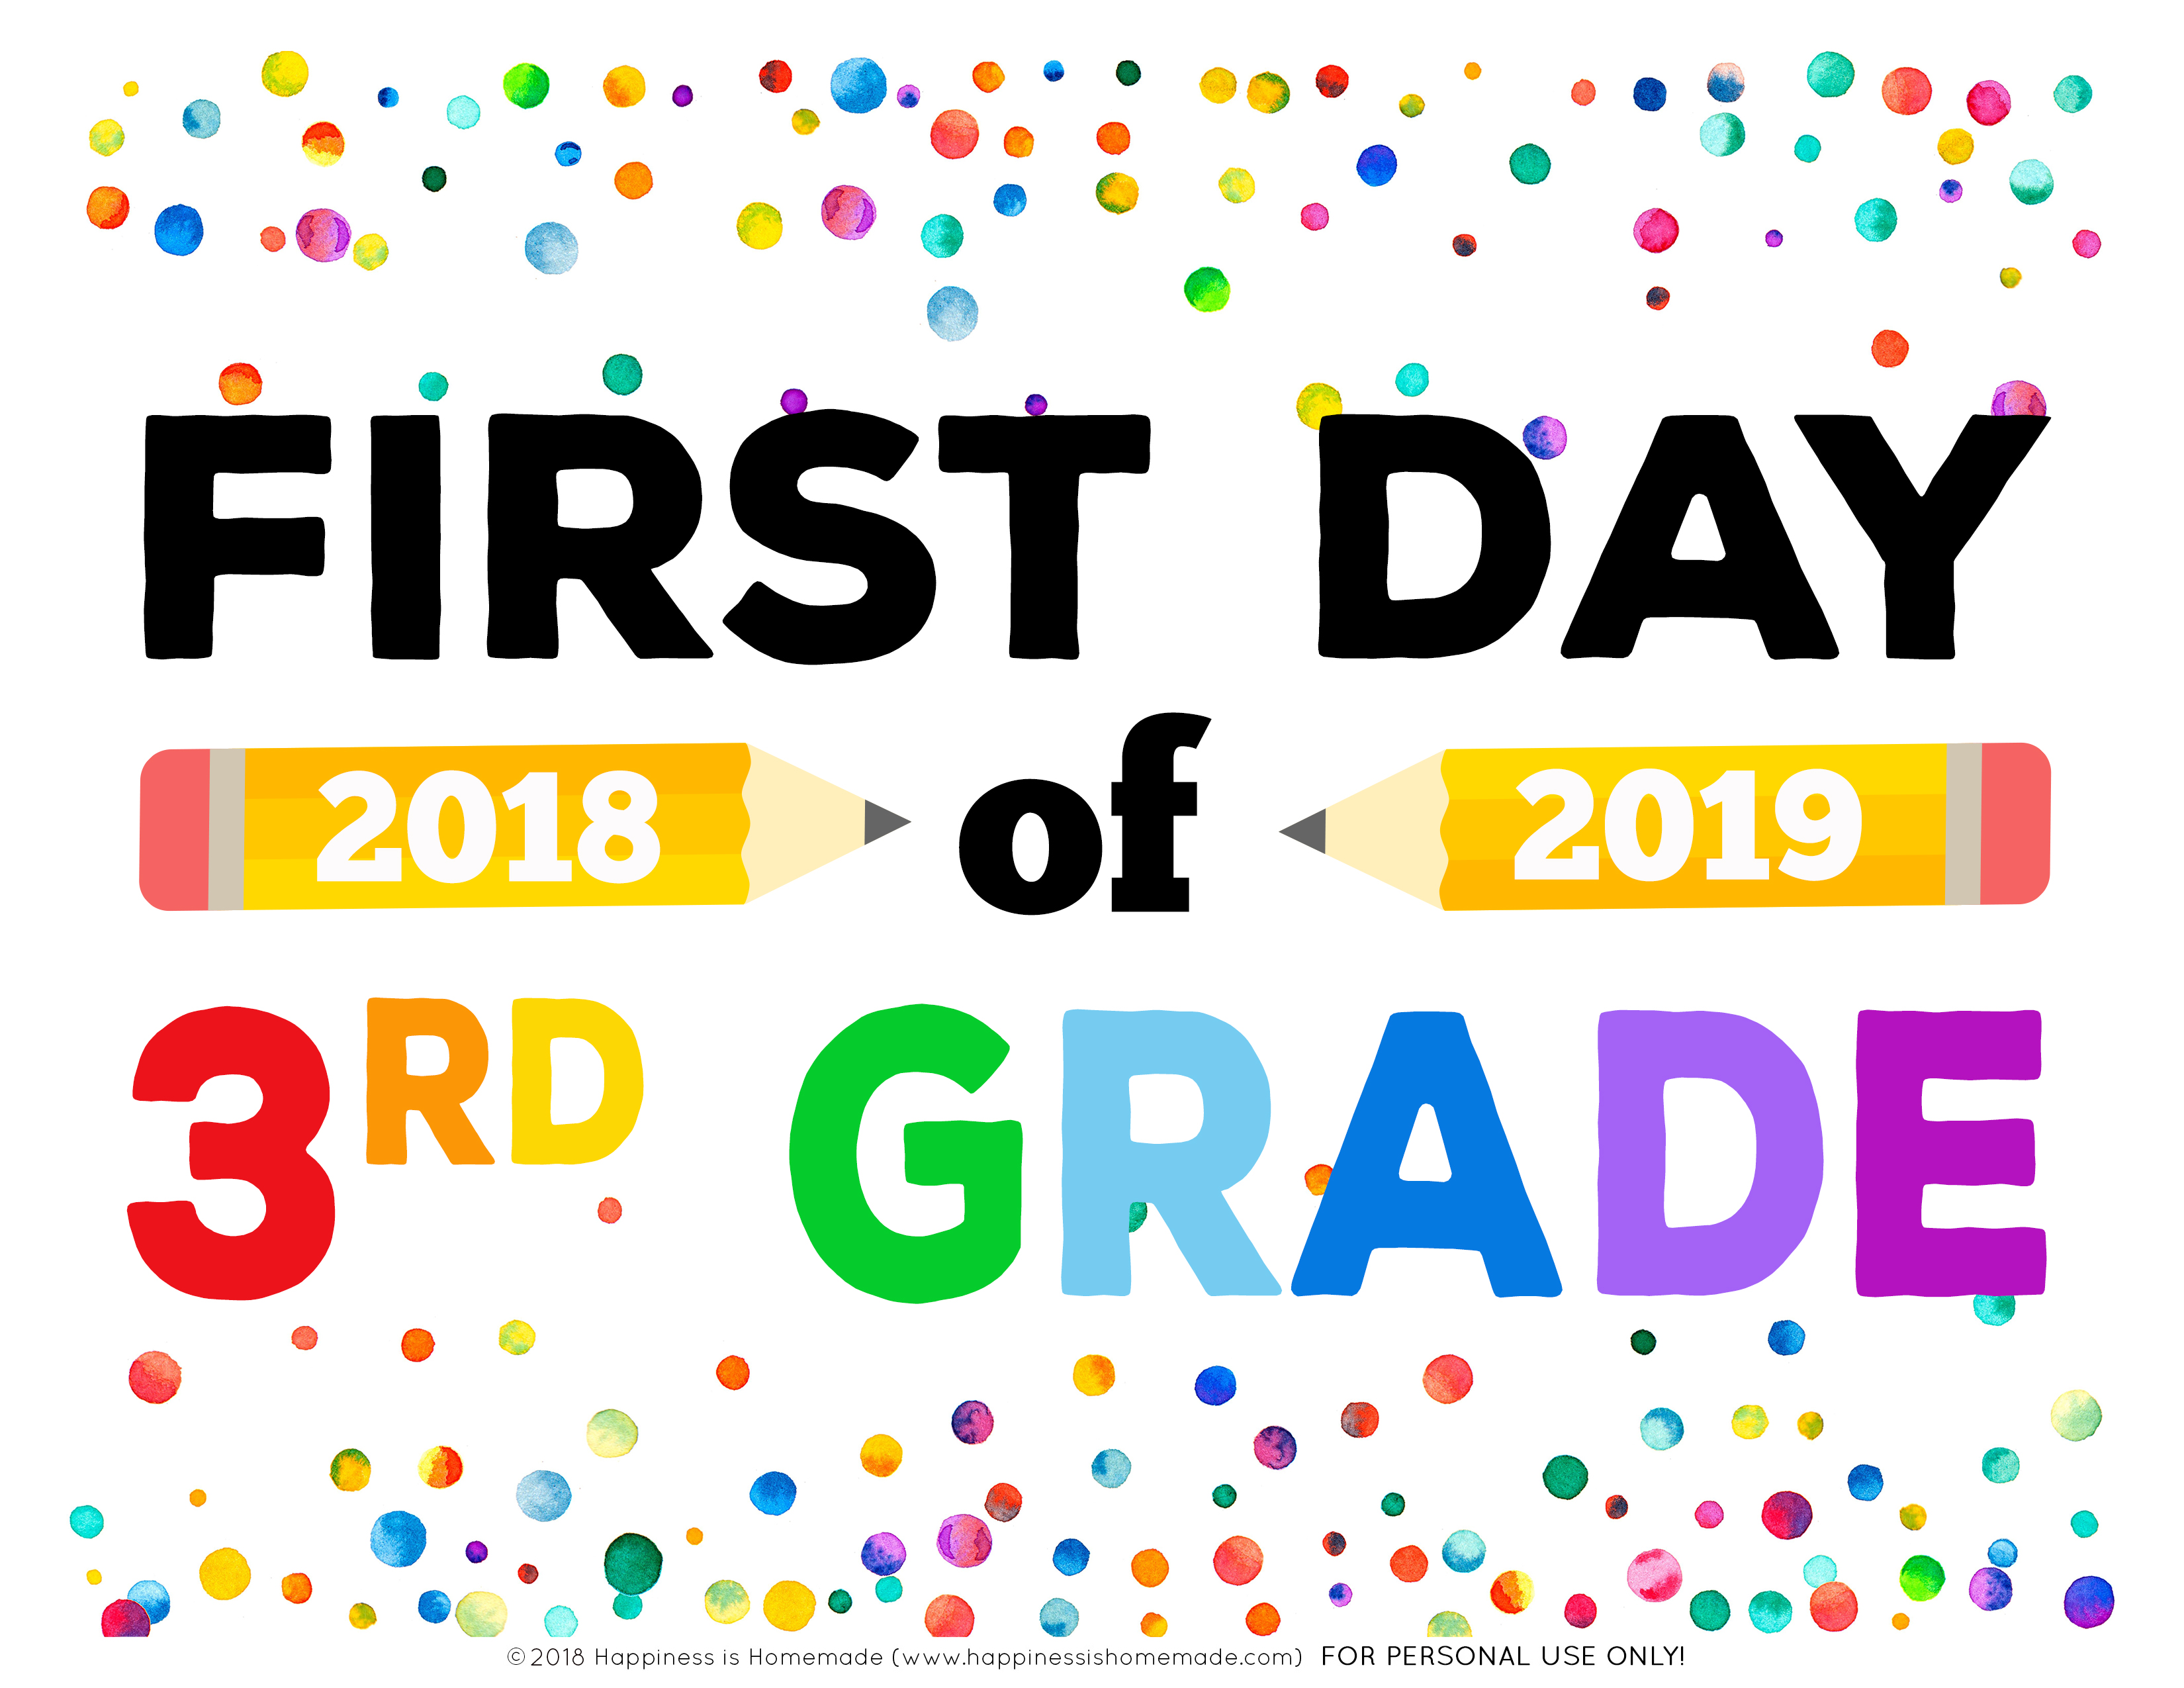 photo relating to First Day of 3rd Grade Sign Printable called Absolutely free Printable Initial Working day of Higher education Indicators - Joy is Selfmade